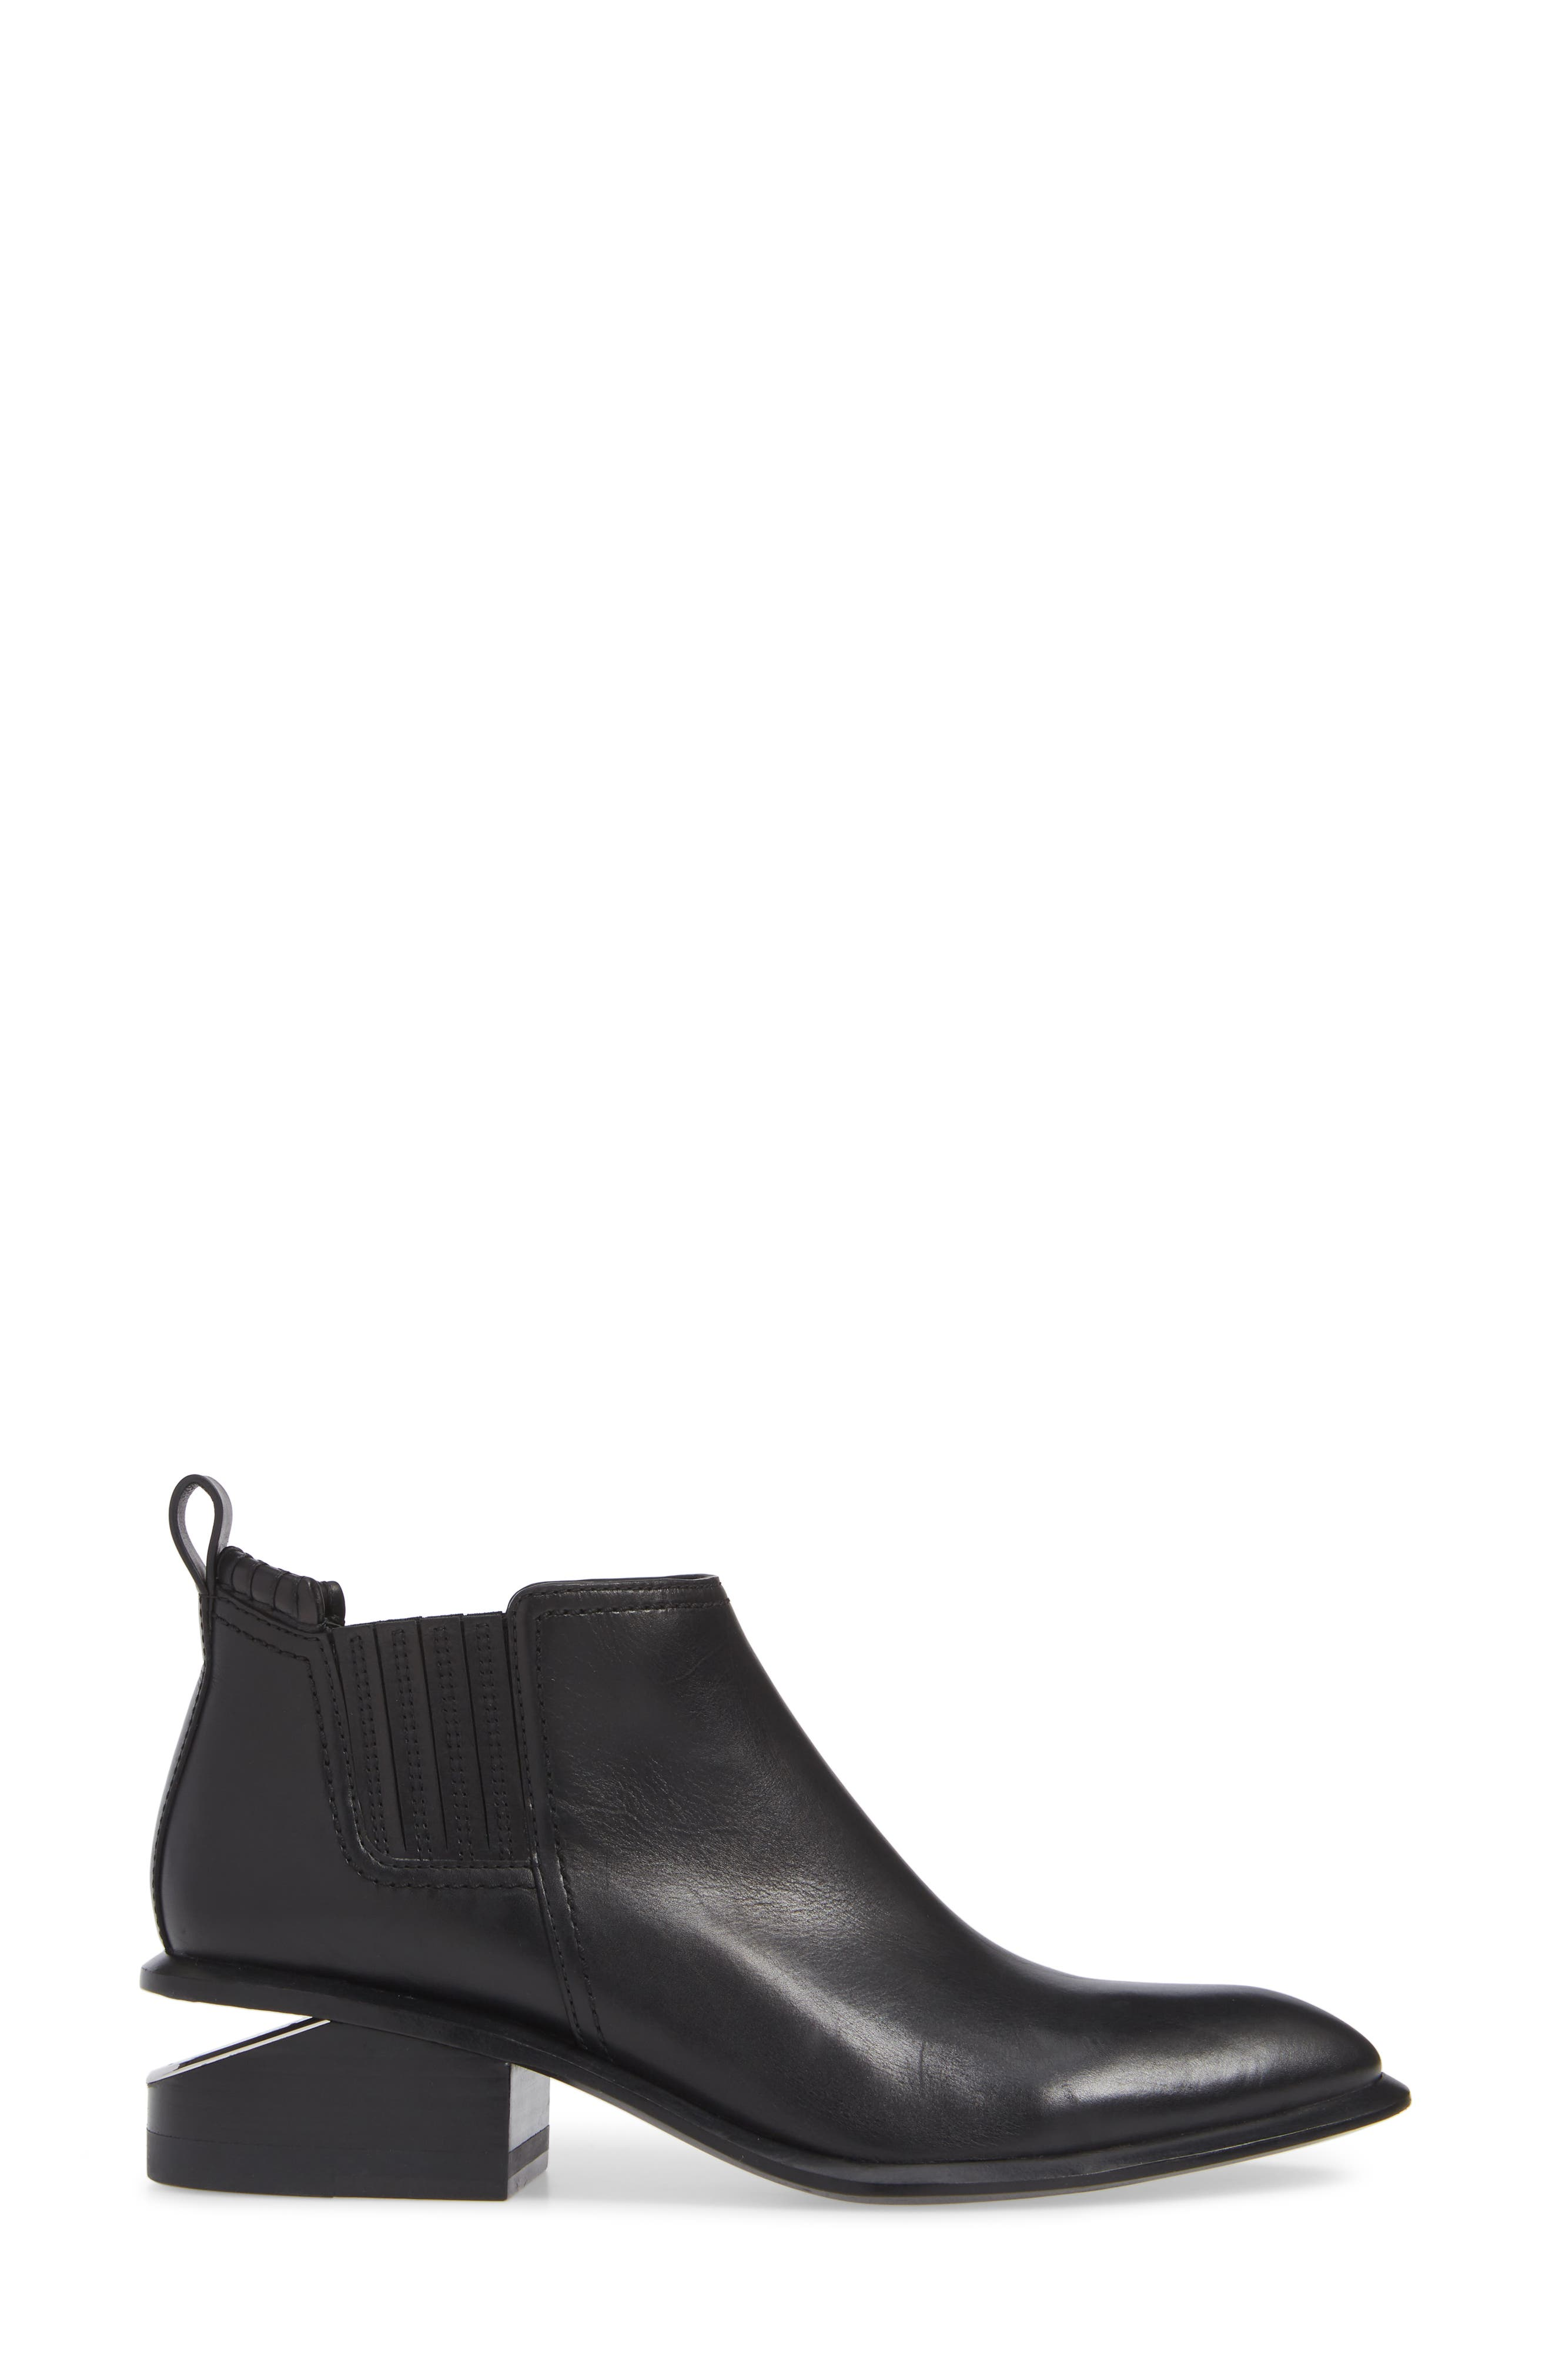 ALEXANDER WANG, Kori Boot, Alternate thumbnail 3, color, BLACK/ SILVER